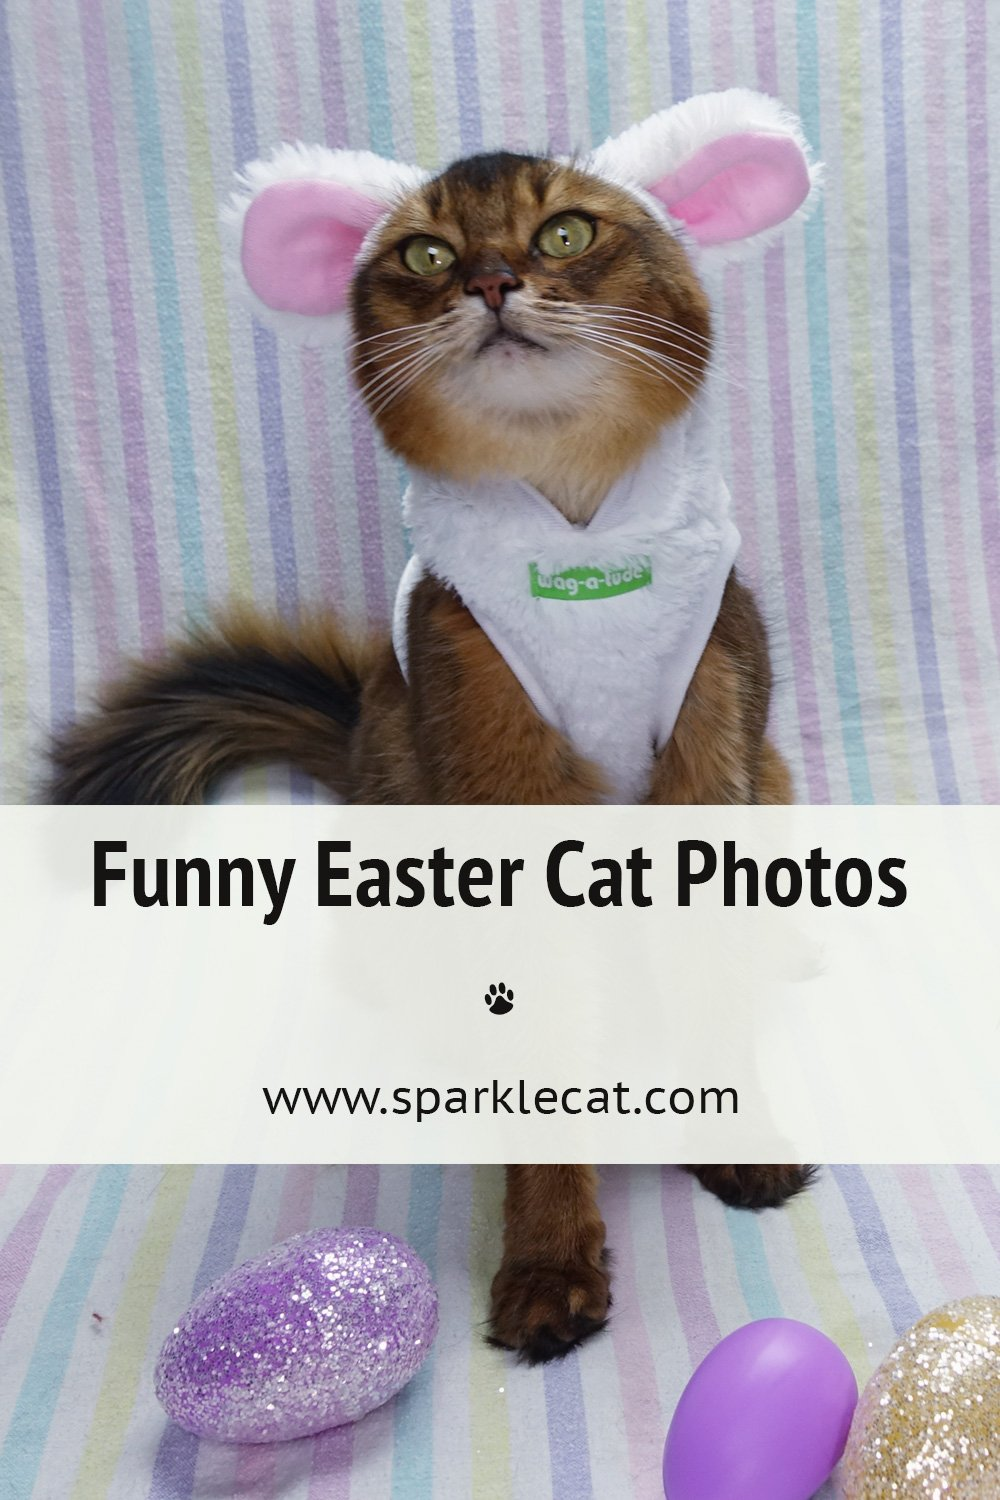 Never-Before-Seen Caturday Easter Outtake Flashbacks